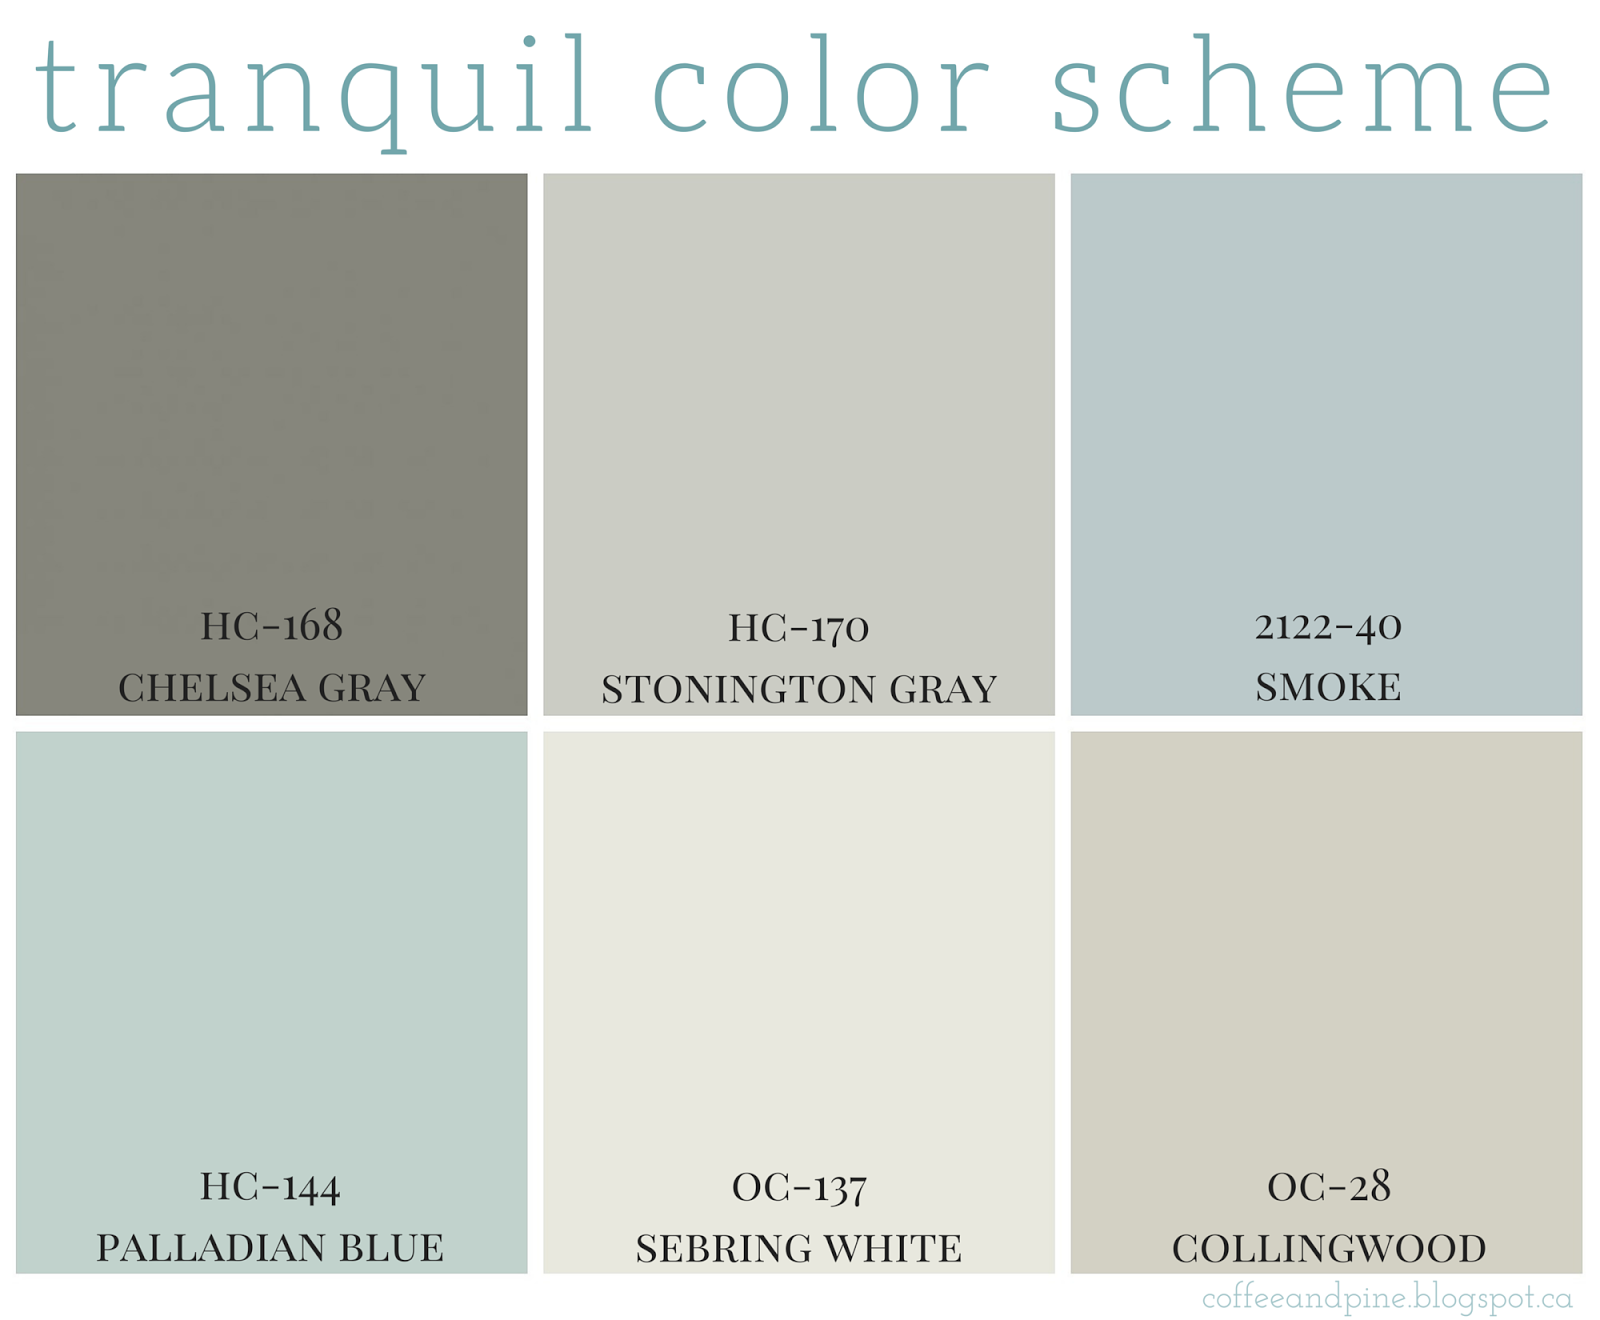 Full Home Color Scheme Calming Colors Are So Popular Right Now In Home Decor Benjamin Moore